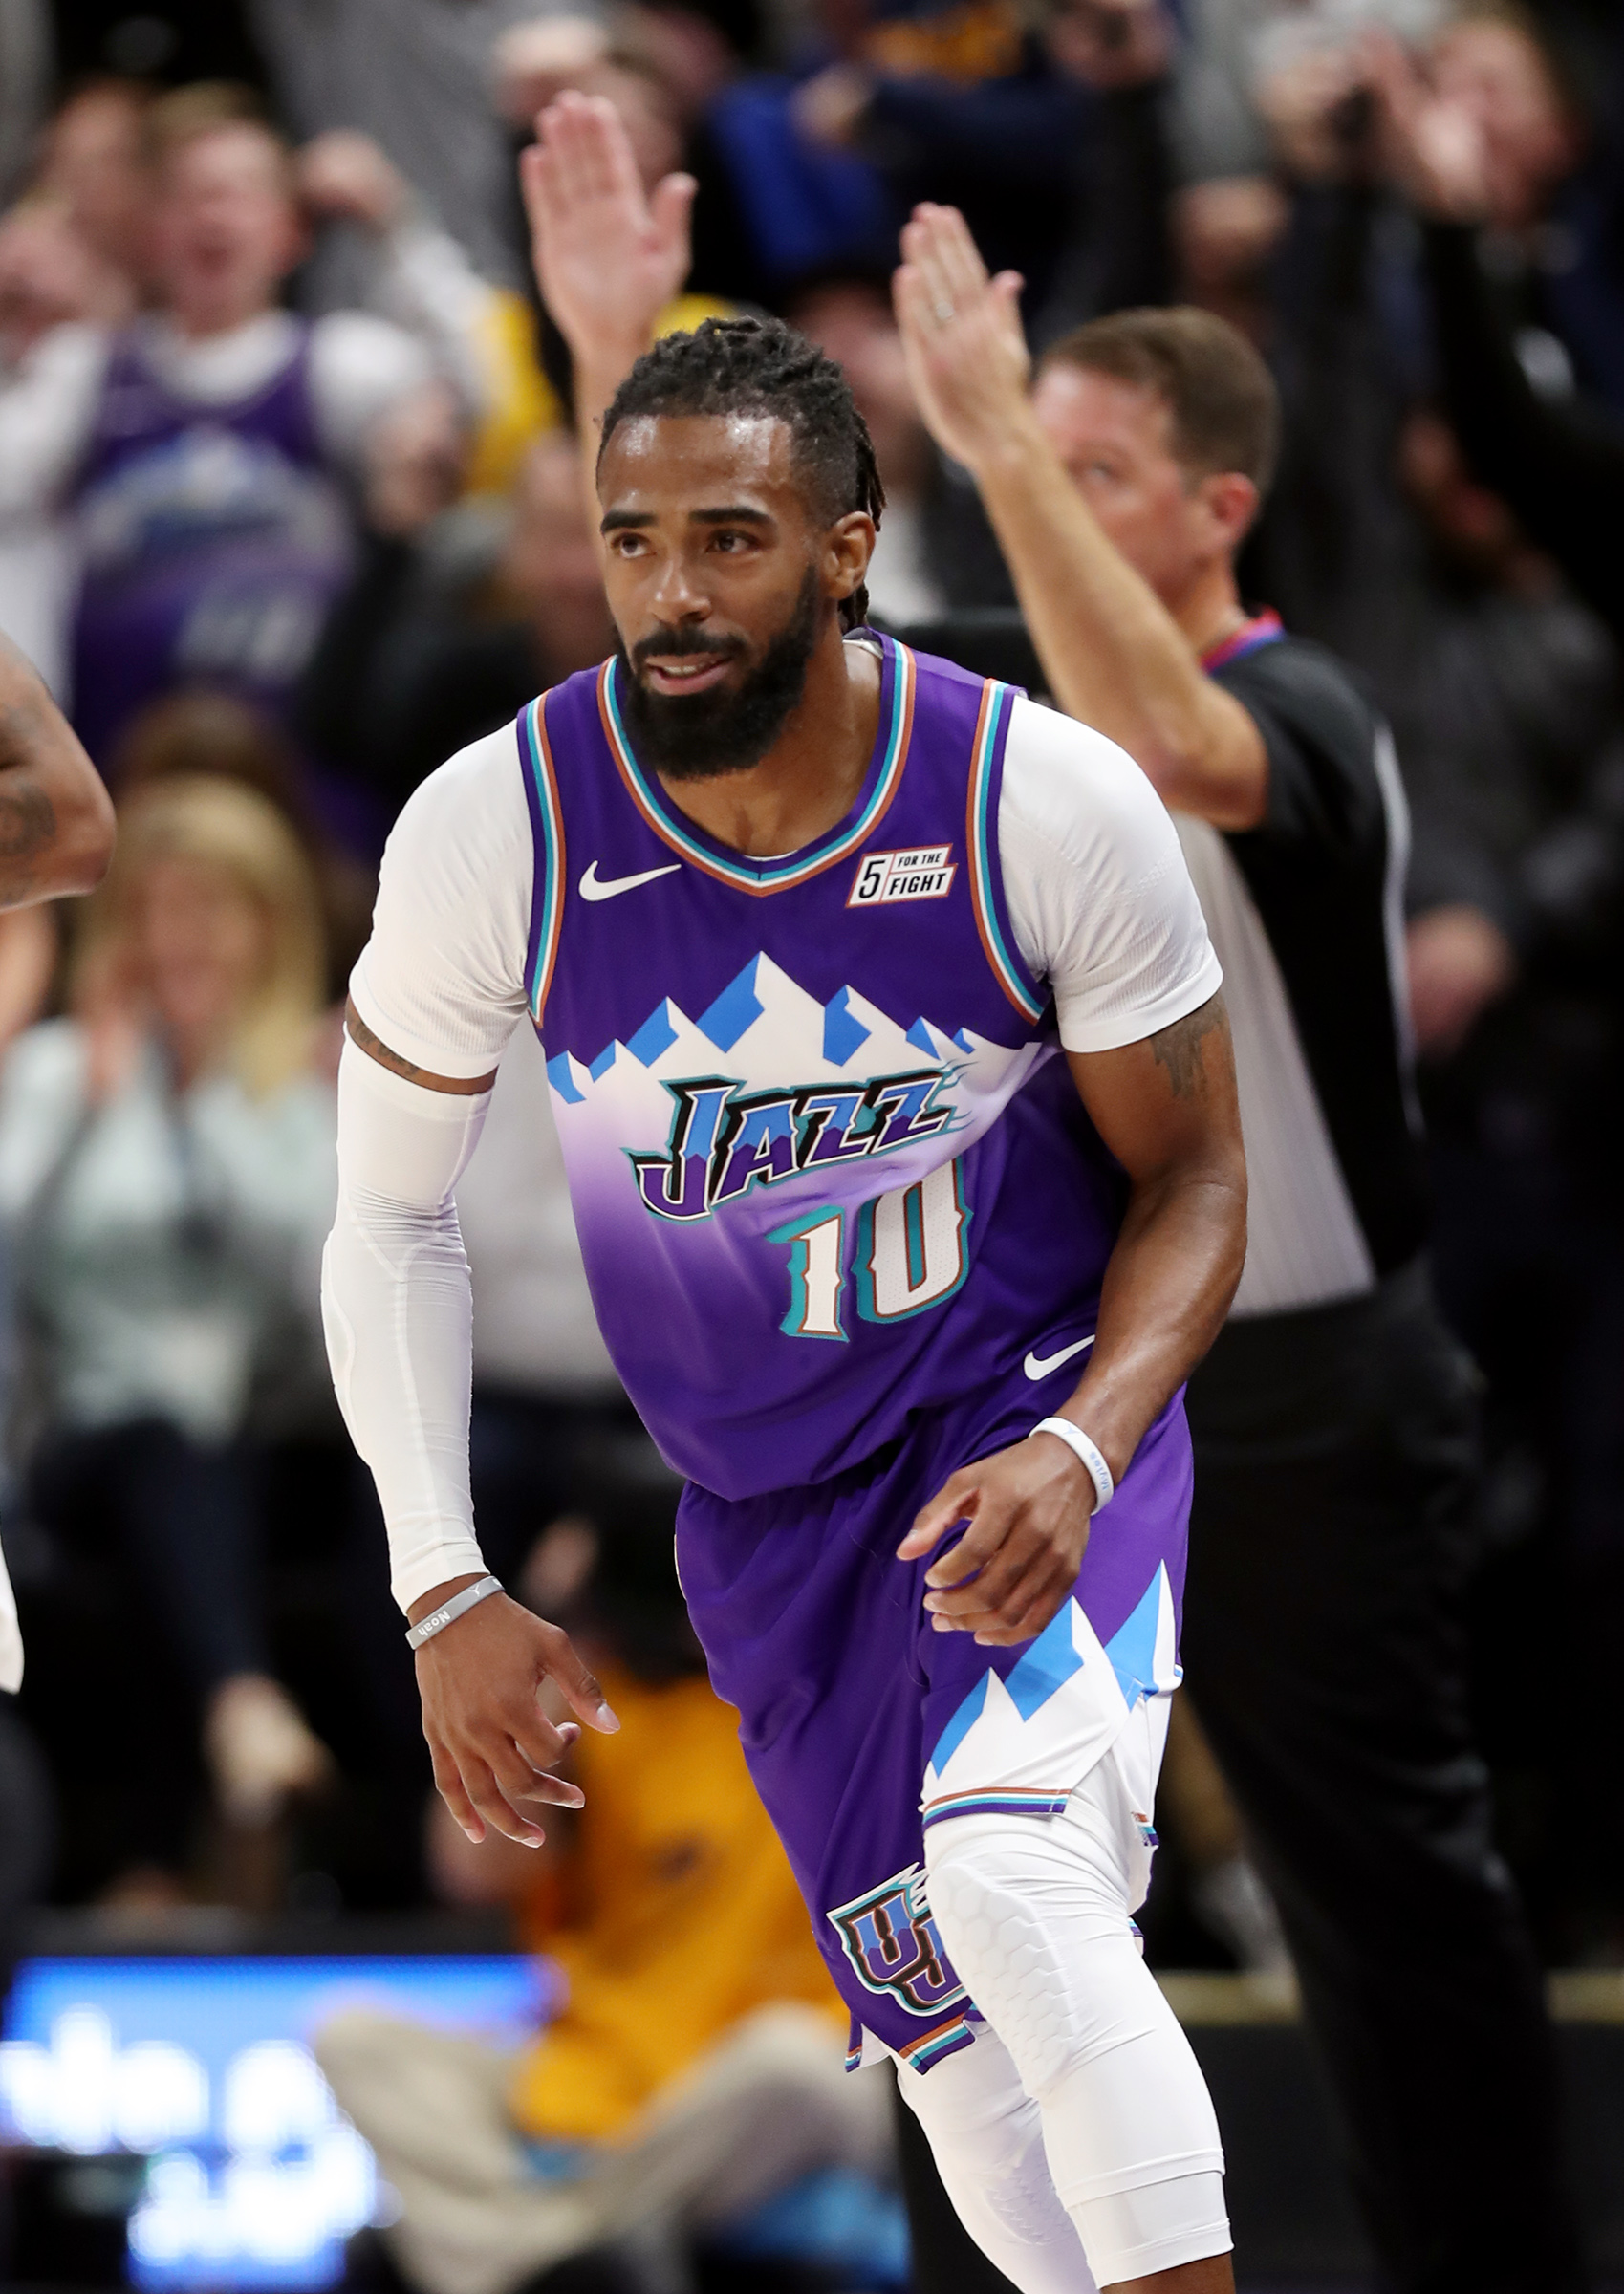 Utah Jazz guard Mike Conley (10) turns upcourt after dropping in a 3-point shot as the Utah Jazz and the LA Clippers play an NBA basketball game at Vivint Arena in Salt Lake City on Wednesday, Oct. 30, 2019. Jazz won 110-96.